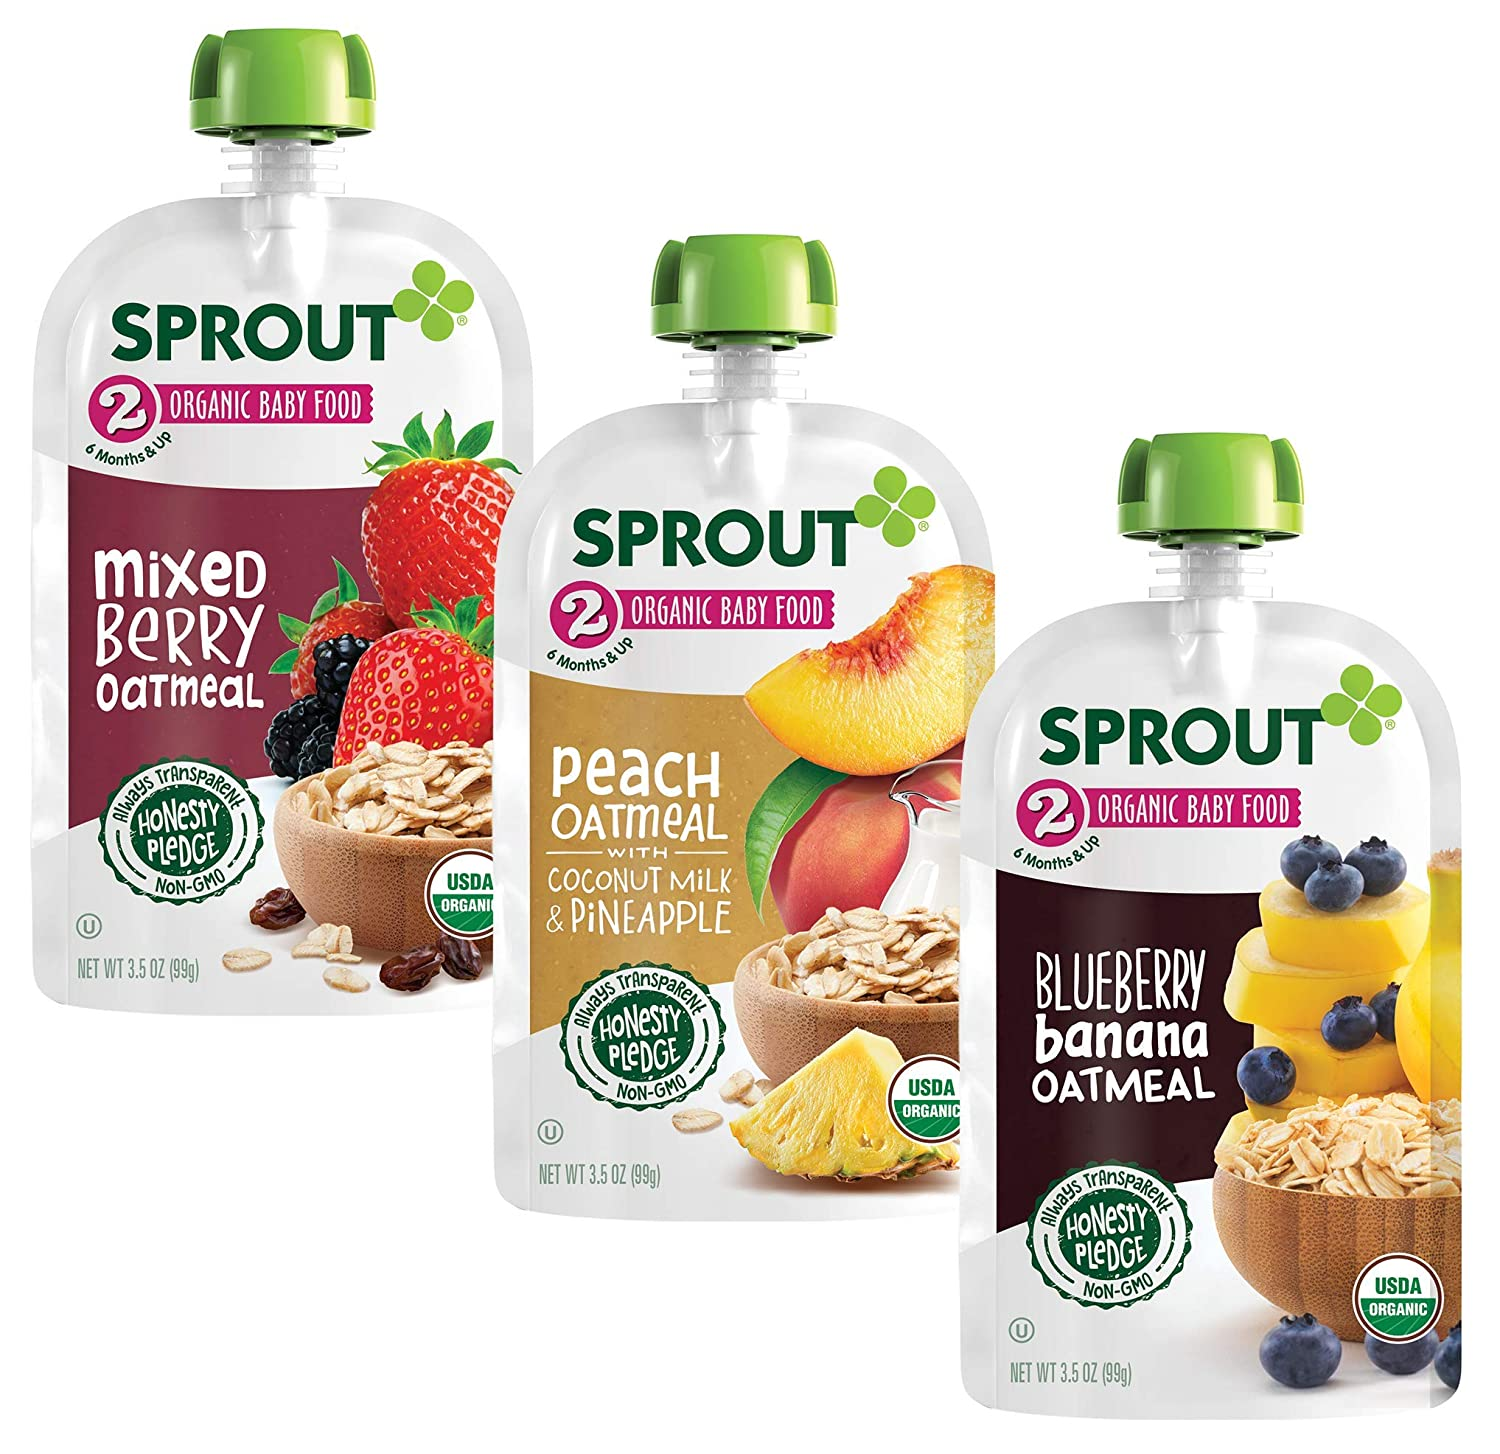 Sprout Organic Baby Food Pouches, Stage 2 Oatmeal Variety 3 Flavors Blueberry Banana oatmeal, Mixed Berry Oatmeal, Peach Oatmeal with Coconut Milk & Pineapple Pack of 18